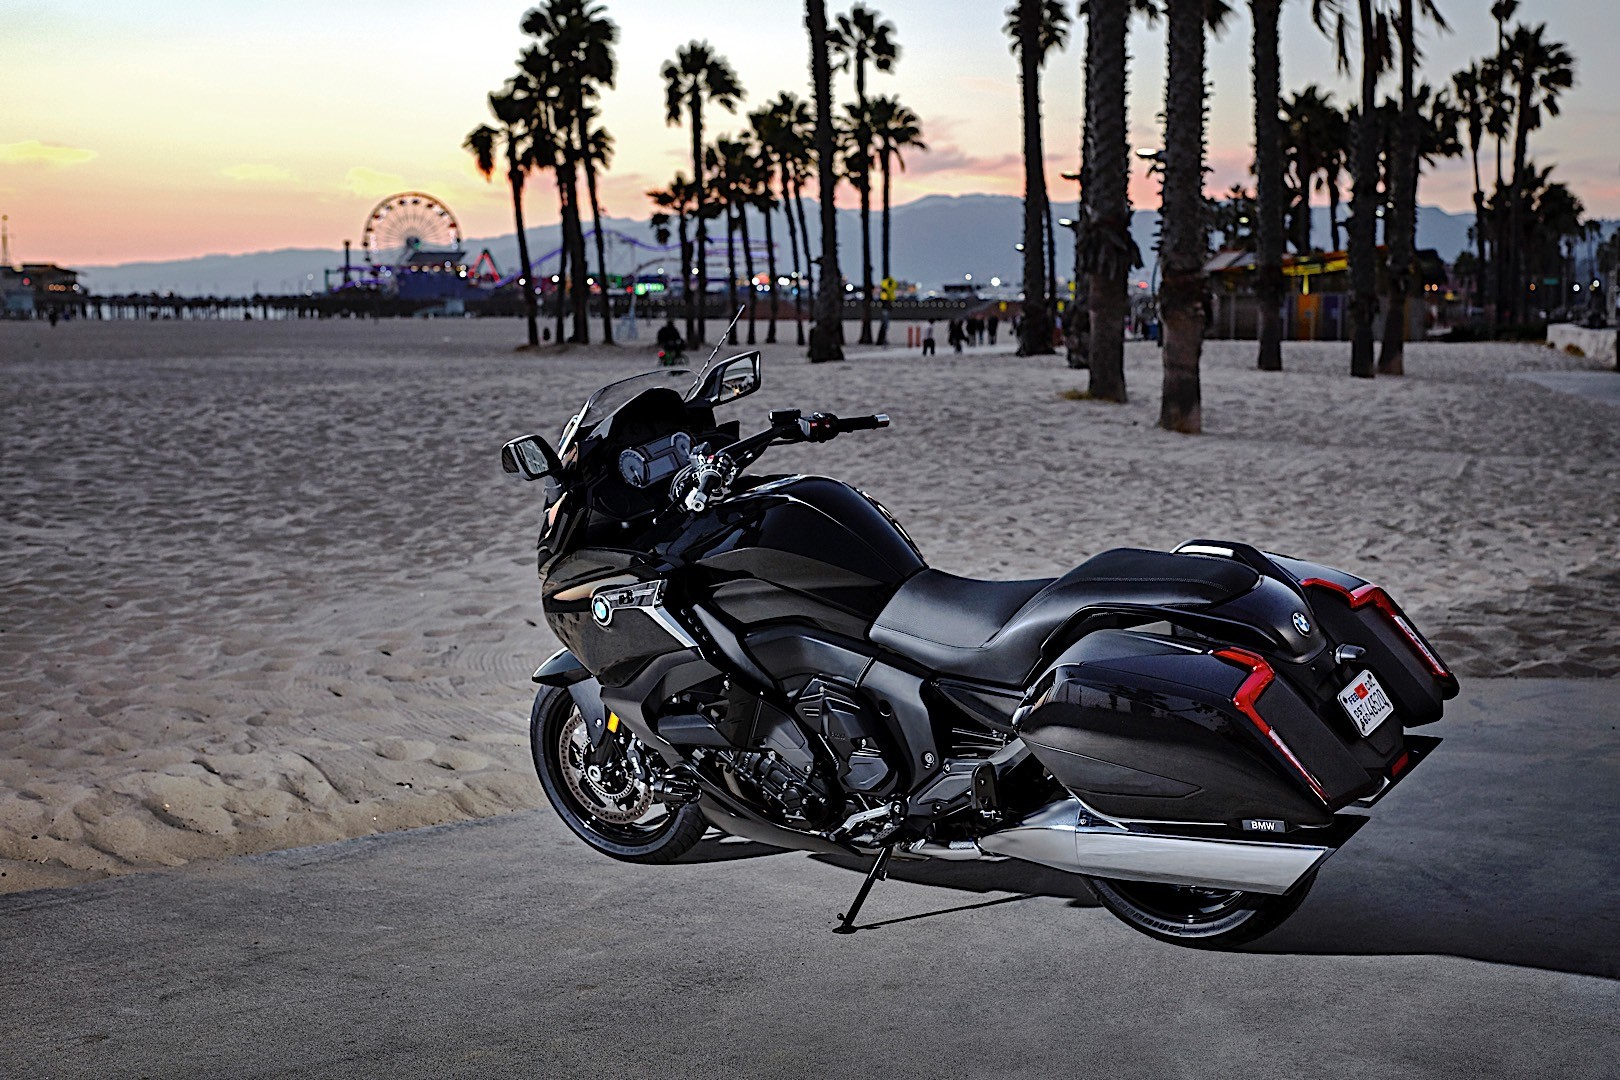 Bmw K 1600 B Debuts On East Coast At Daytona Bike Week